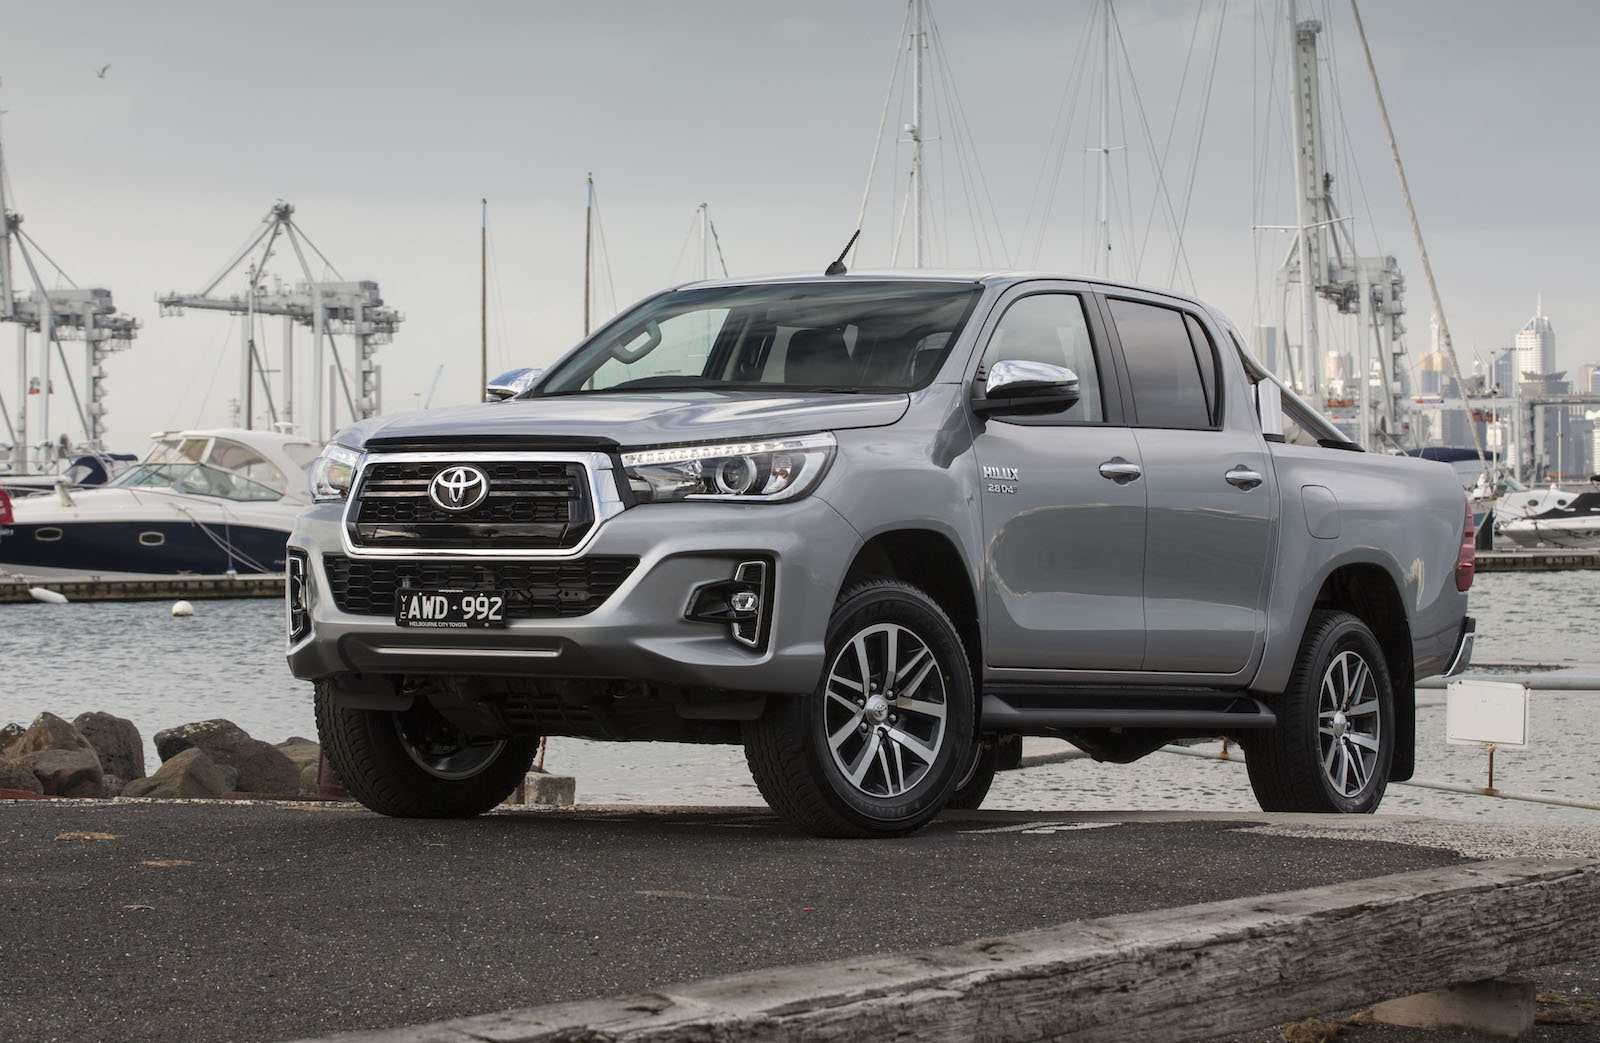 89 All New 2019 Toyota Diesel Hilux Specs and Review with 2019 Toyota Diesel Hilux